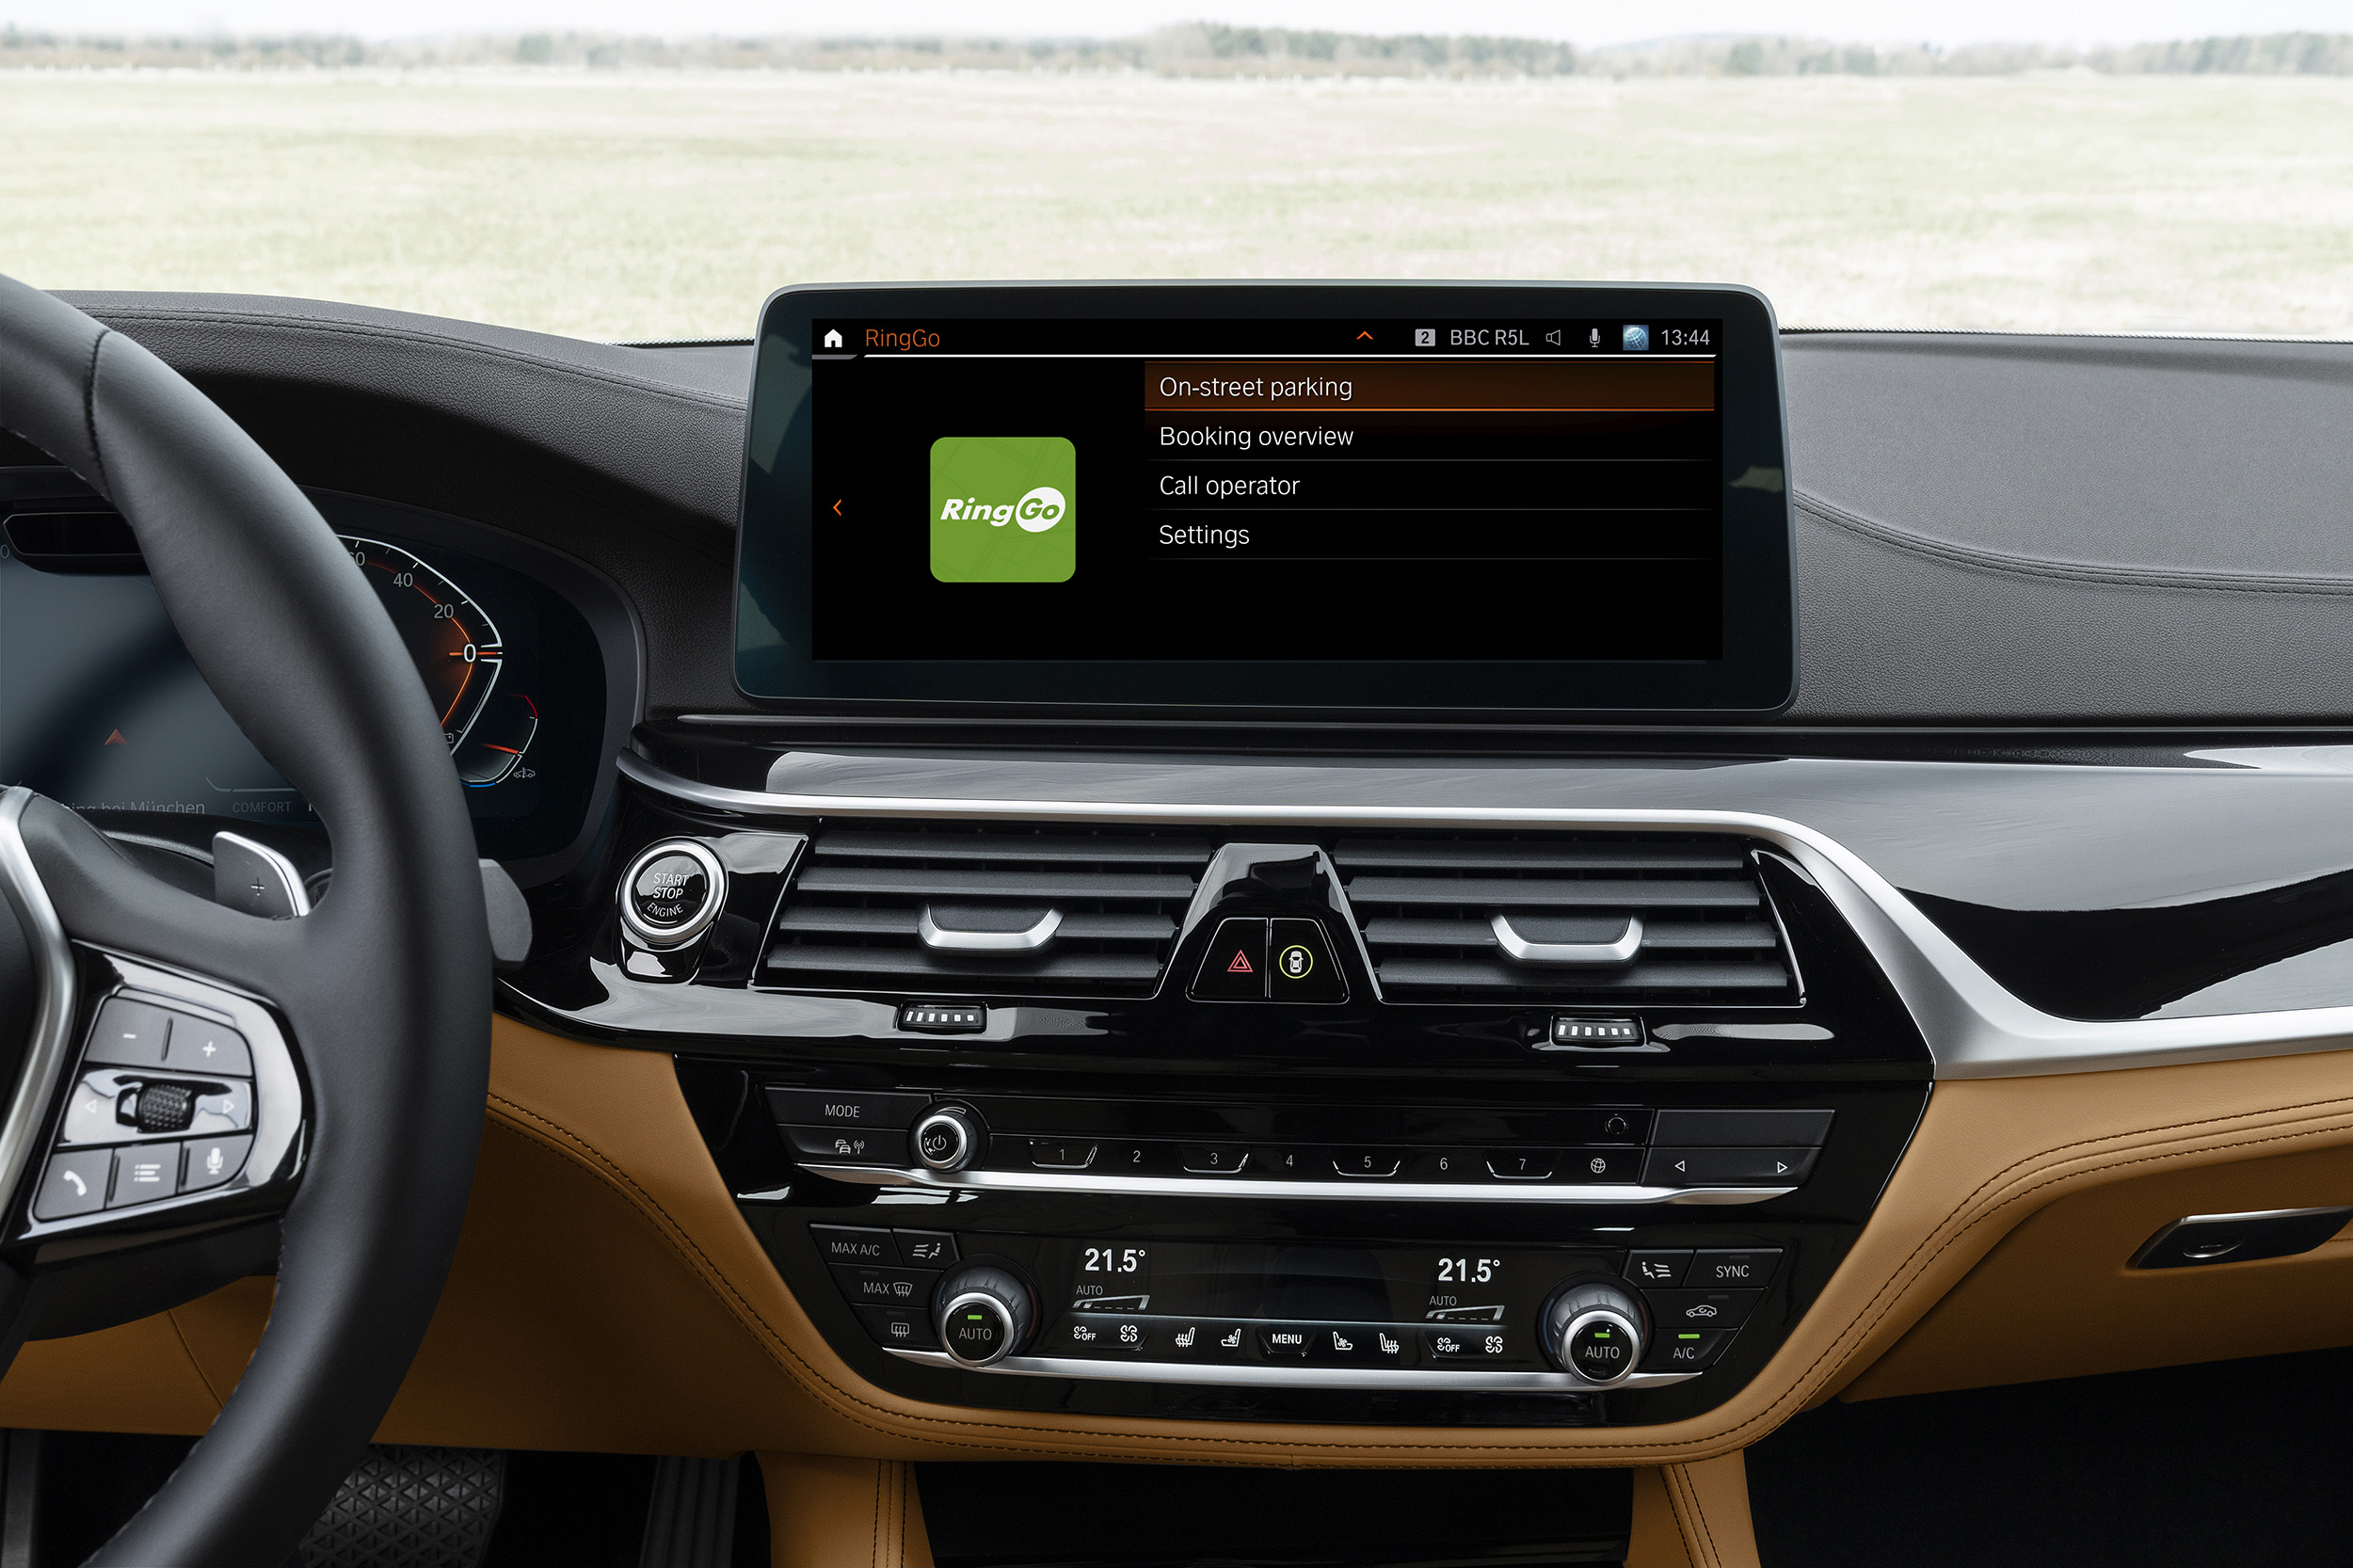 RingGo Park and Pay – Now in BMW